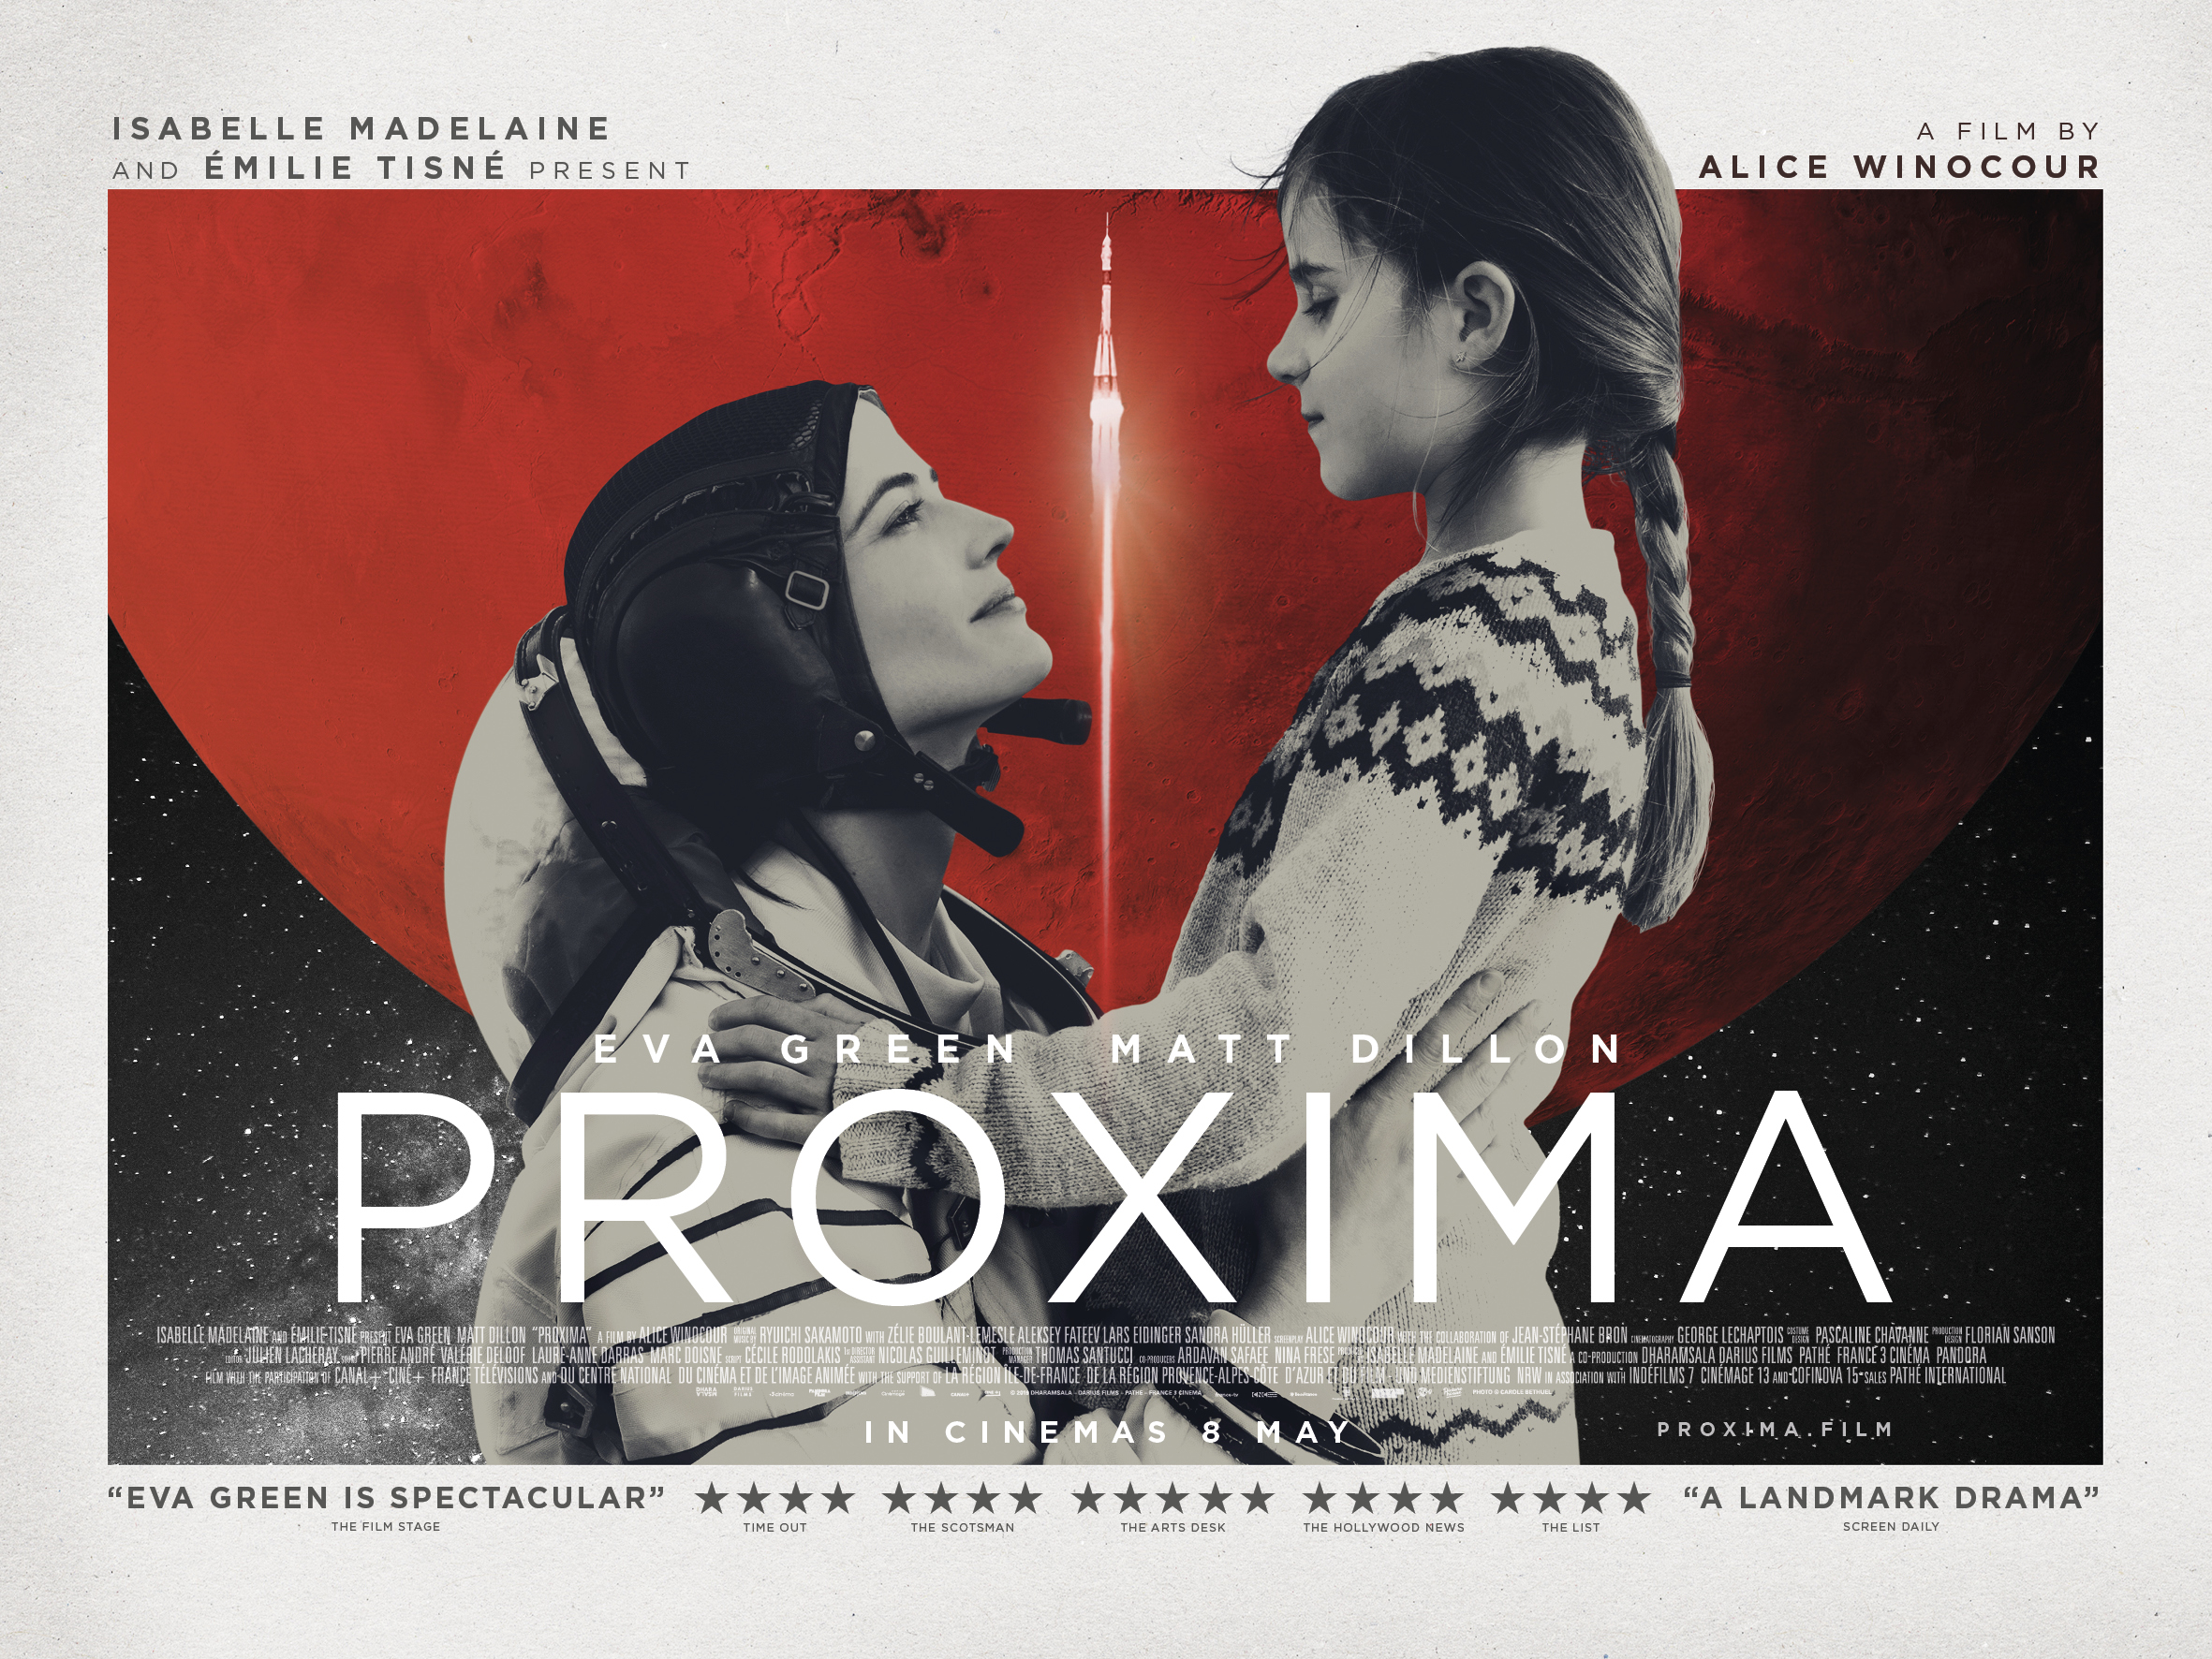 Proxima review: Earthbound space drama with a woman at the core